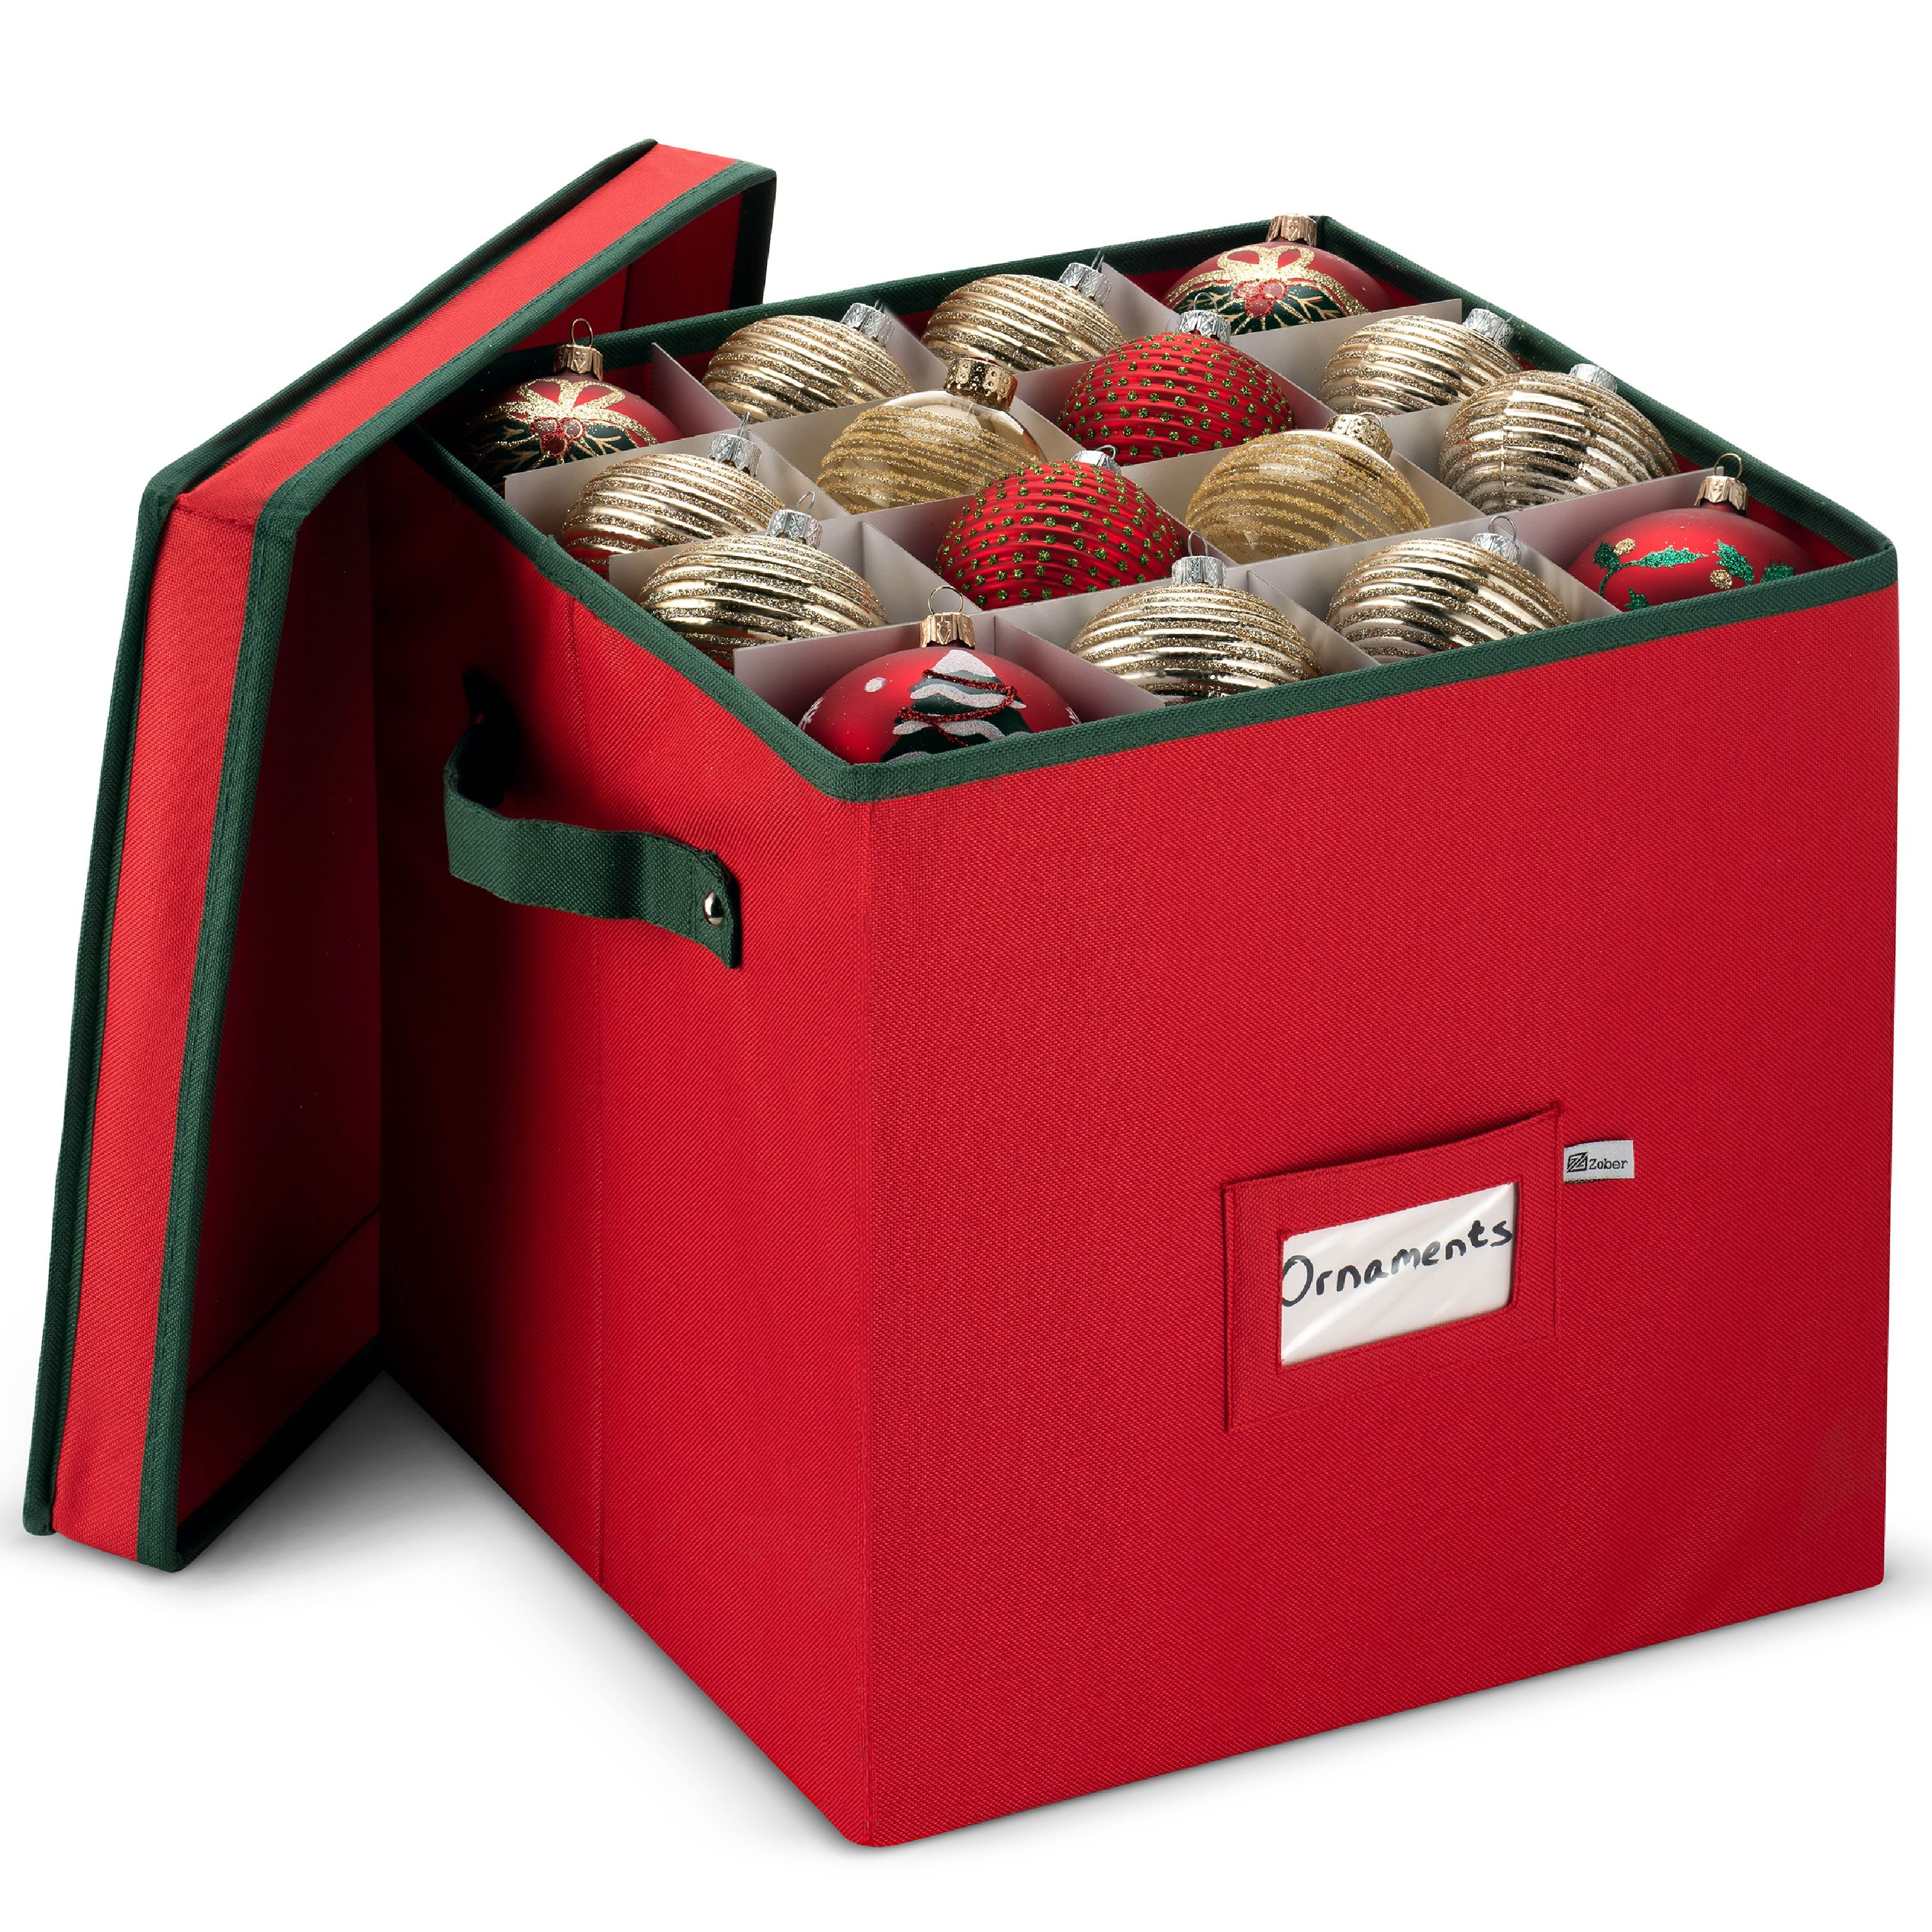 Zober Christmas Ornament Storage Box with Lid 12 x 12 x 12 Adjustable Container with Dividers 600D Oxford Material - Holds up To 64 Round Ornaments - Red